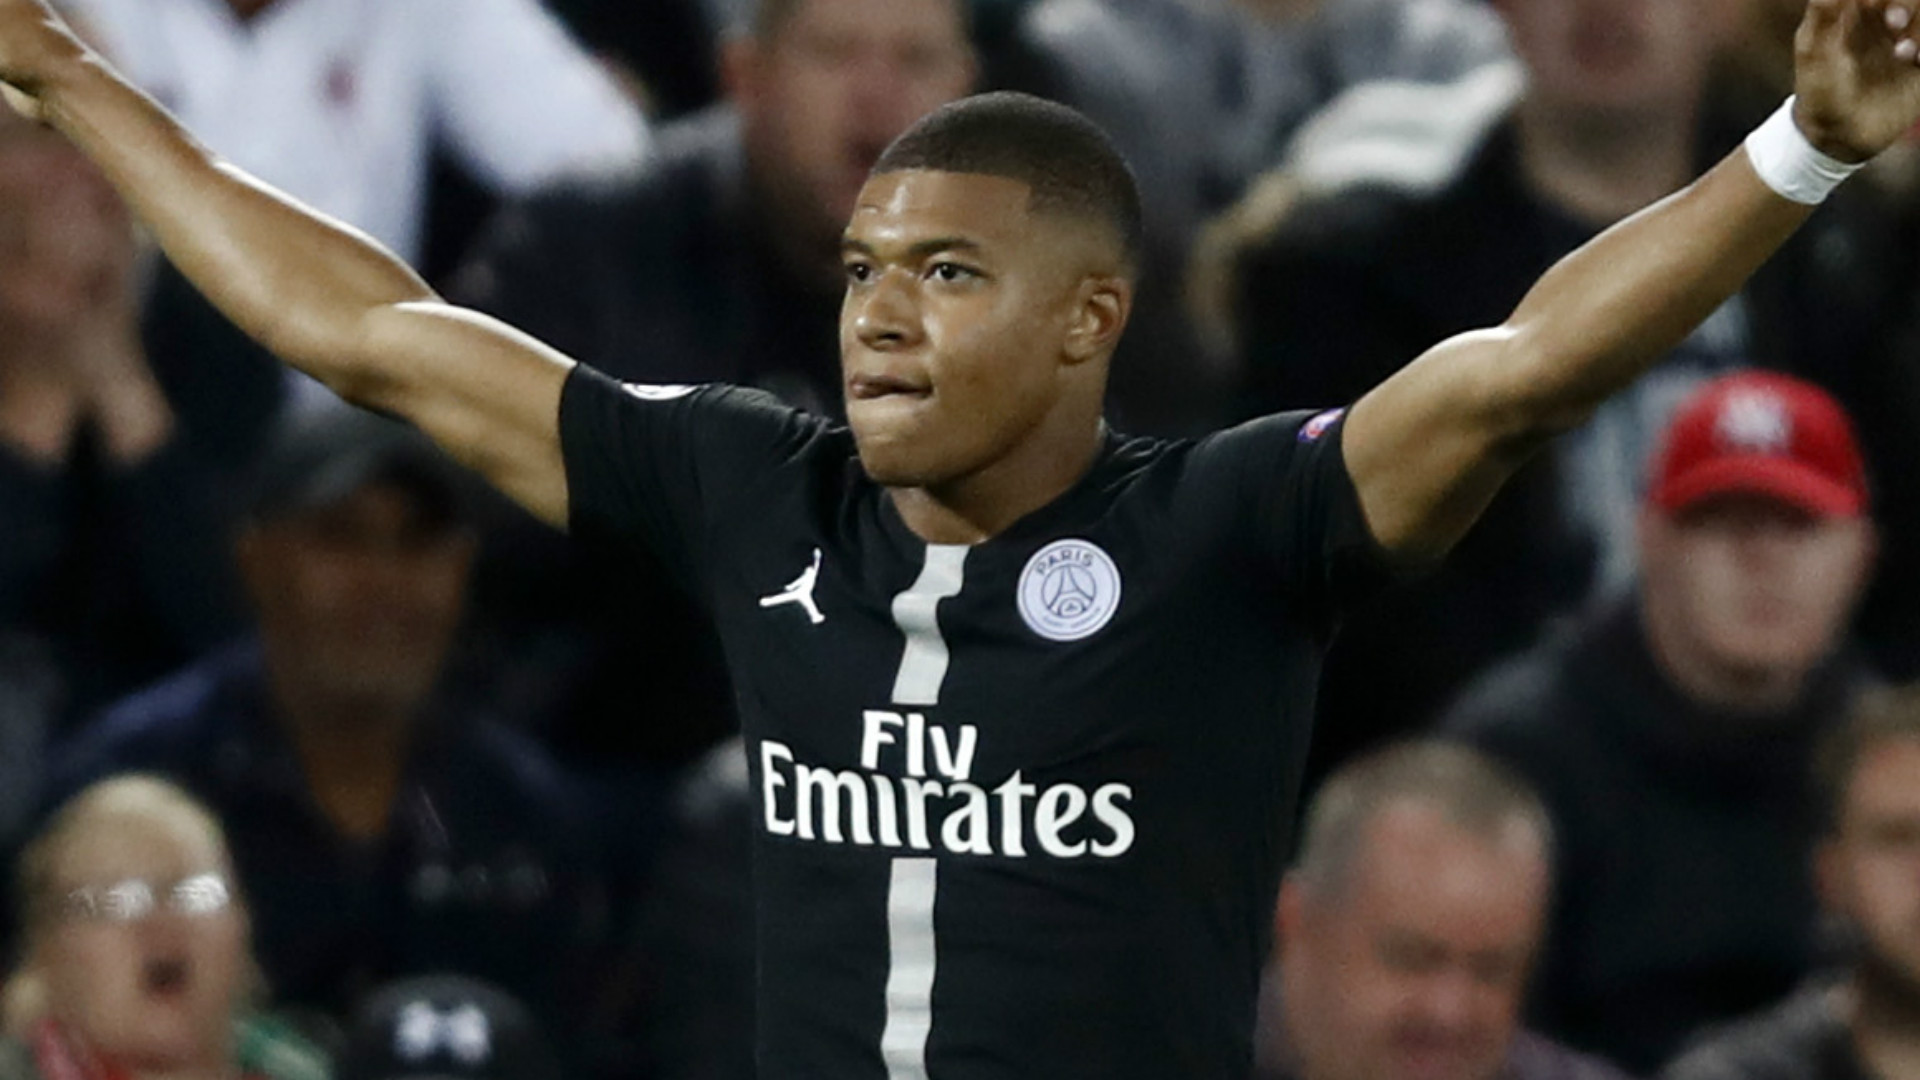 PSG: Mbappe Will Make His Return To Action For PSG On Saturday